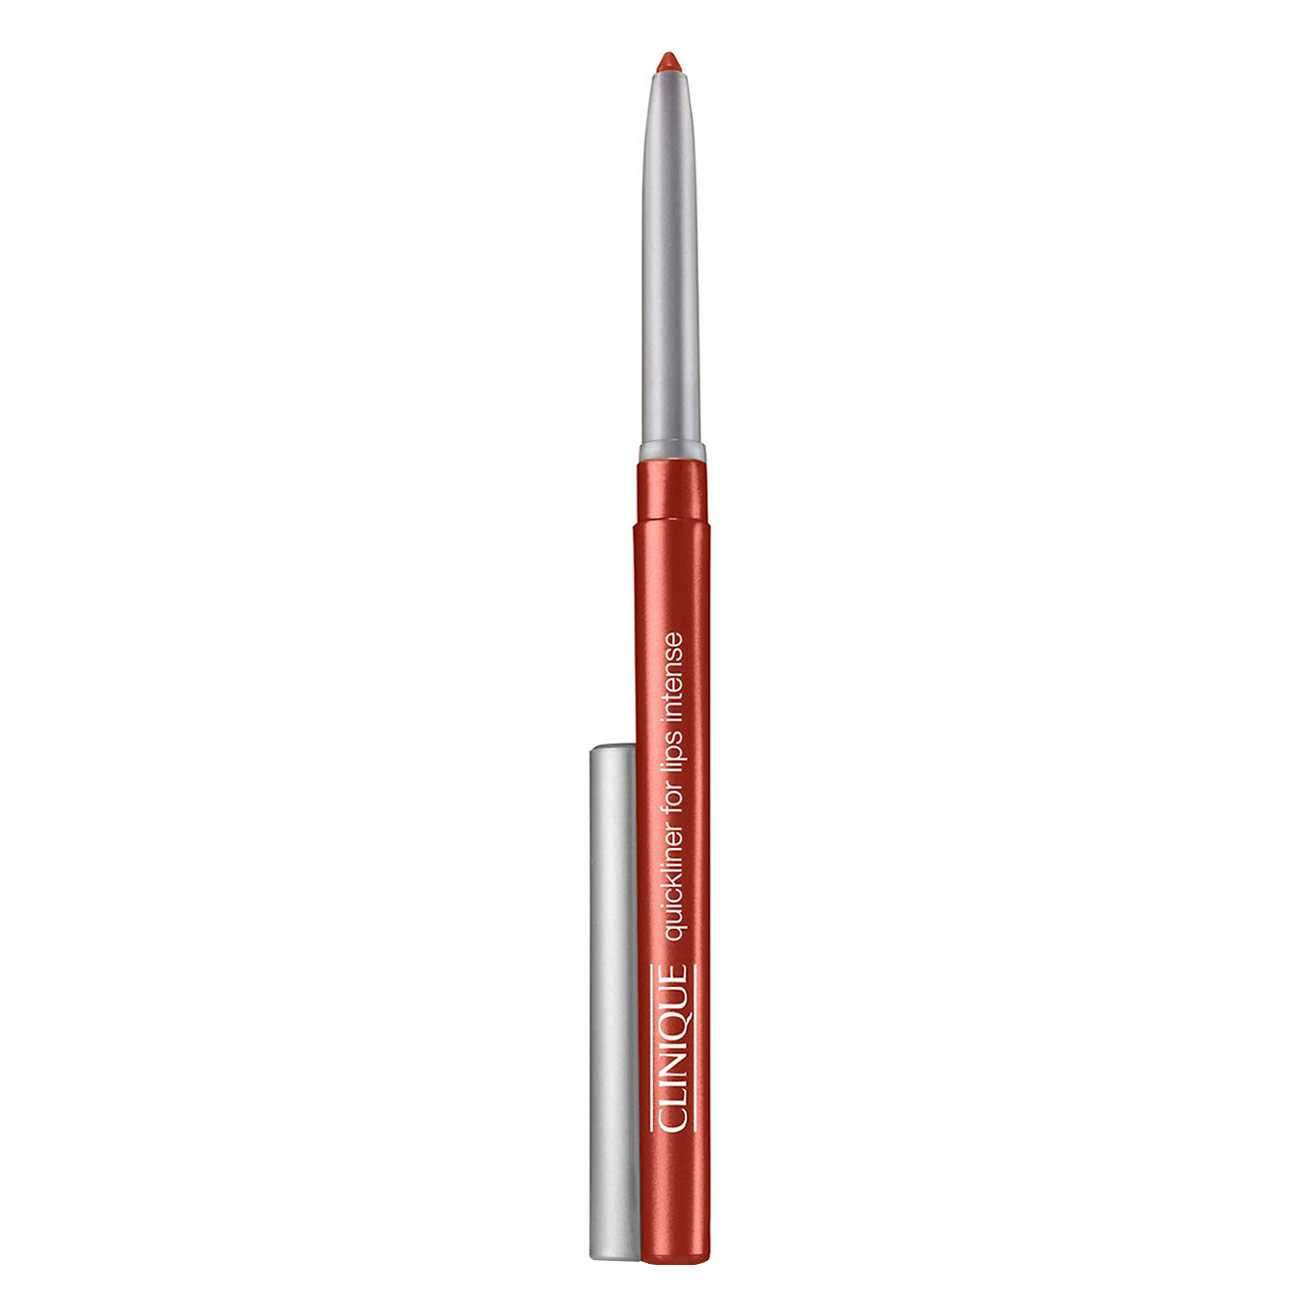 Quickliner For Lips Intense 2.6 G Cayenne 4 Clinique imagine 2021 bestvalue.eu